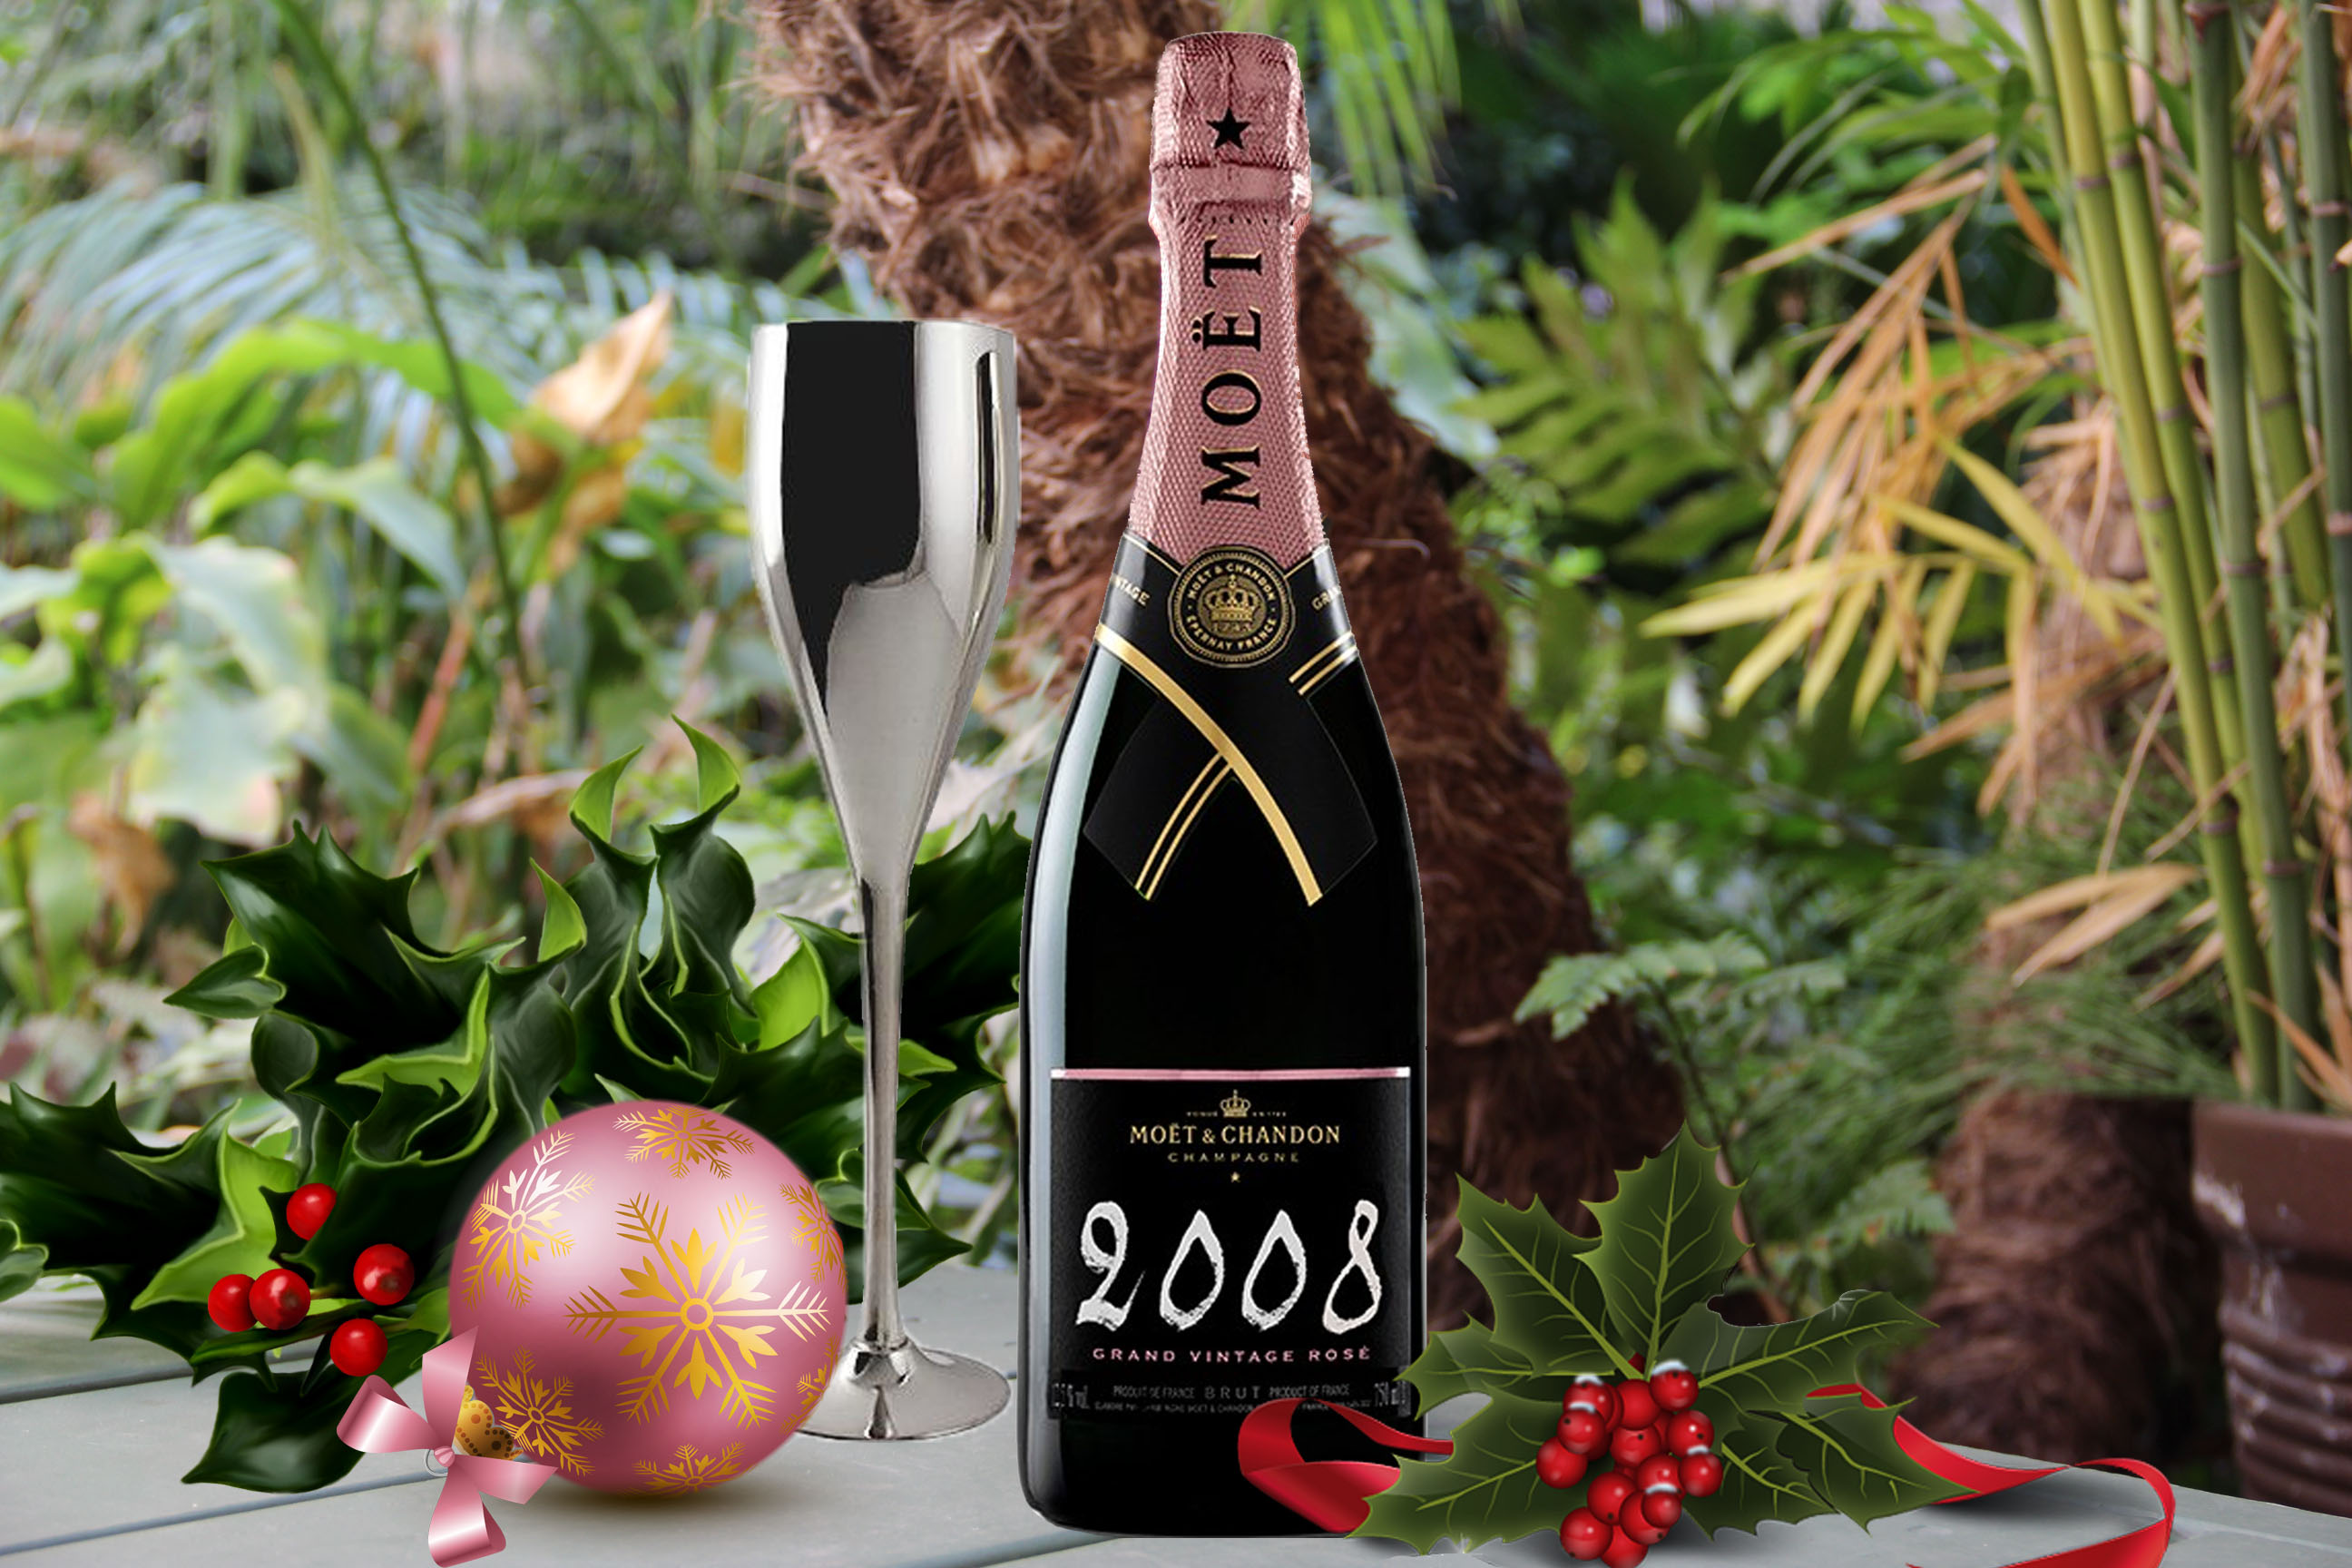 Moet & Chandon champagne for new year's eve